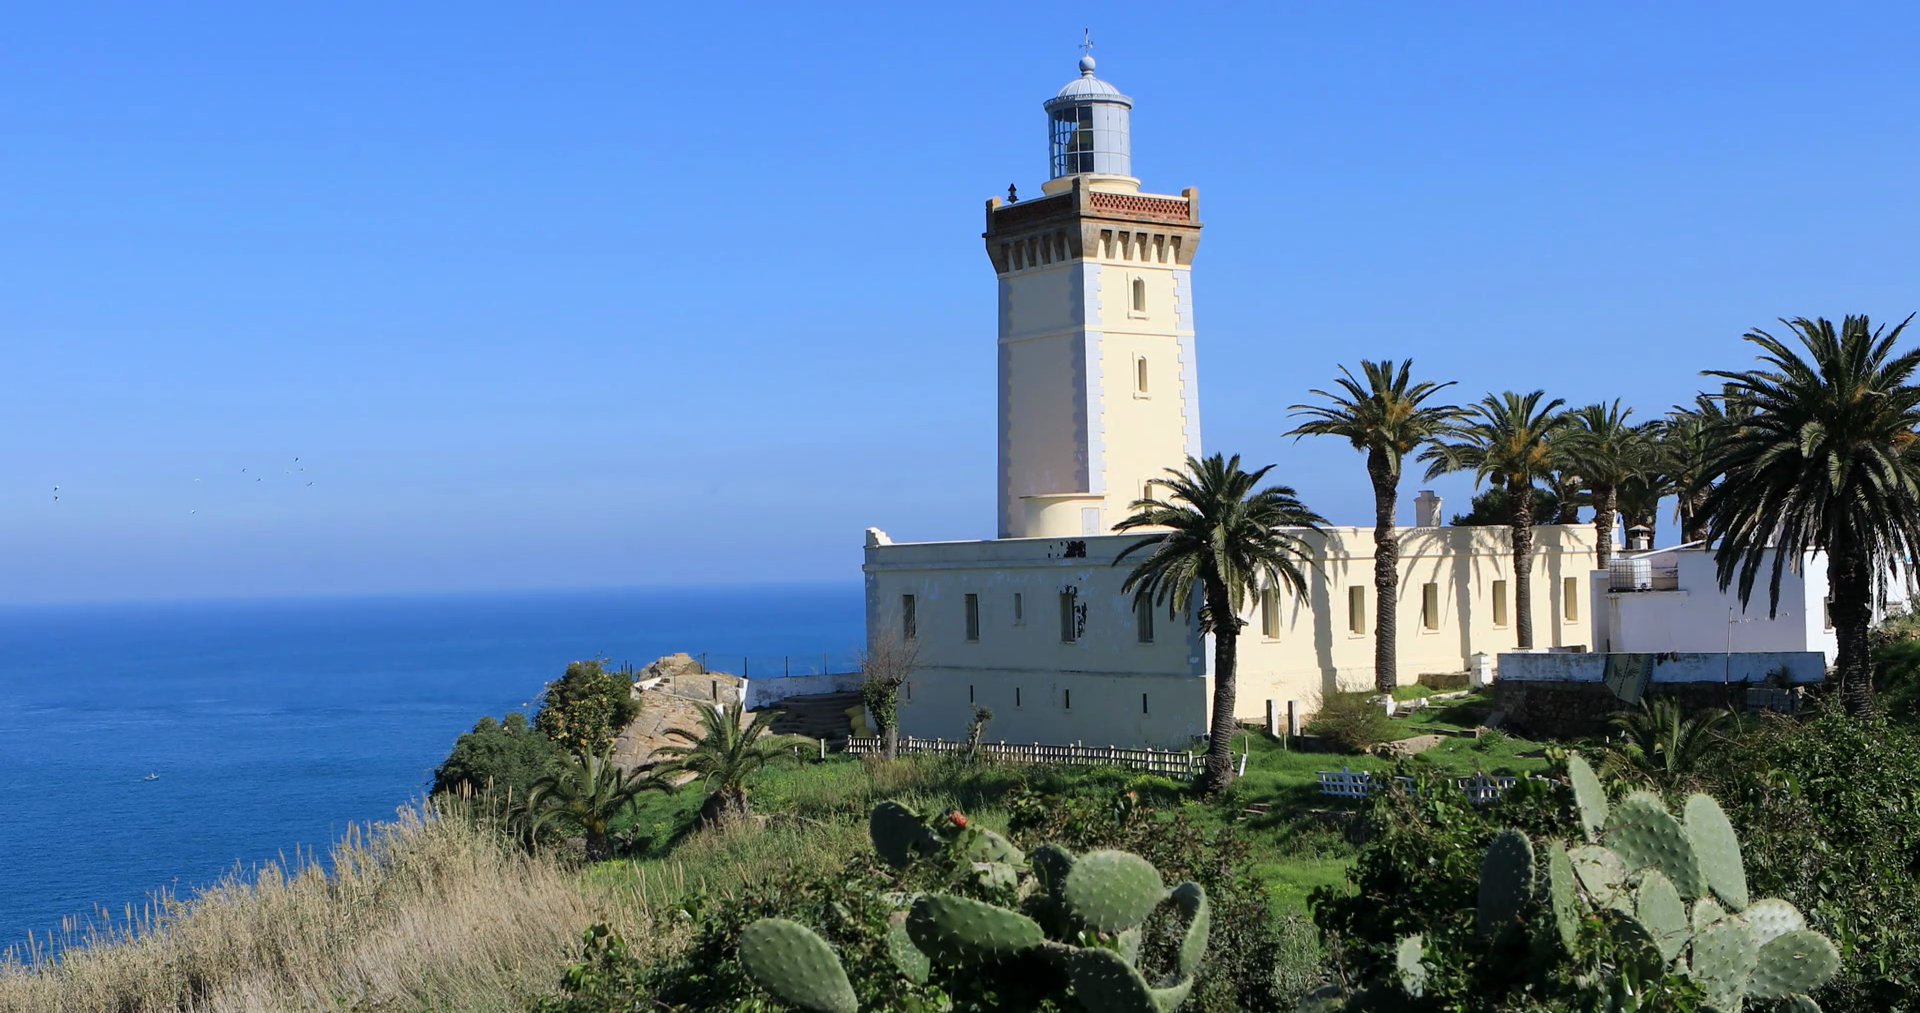 Cap Spartel Lighthouse Tangier and the Mediterranean, 4K UltraHD The Phare Cap Spartel Lighthouse near Tangier in ...